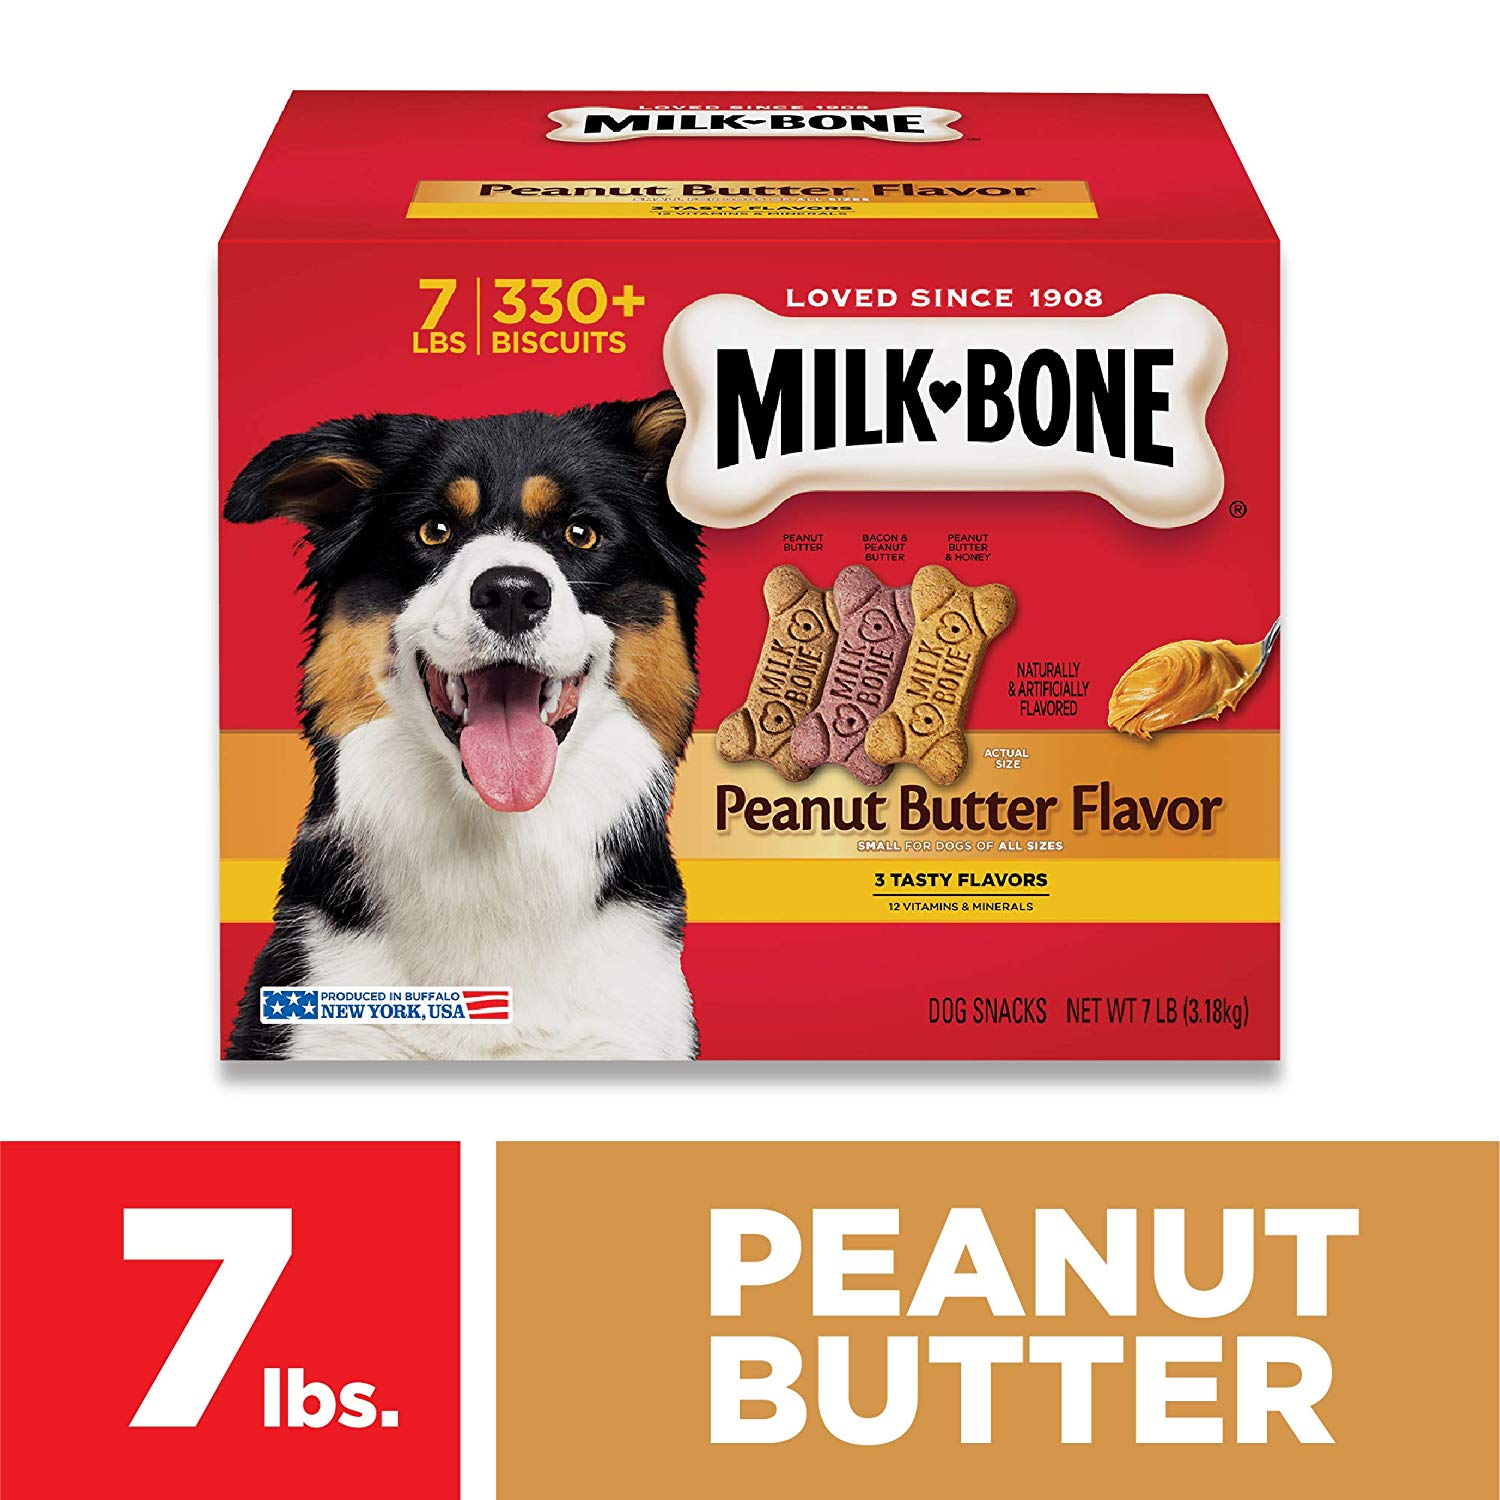 Milk-Bone Peanut Butter Flavor Dog Treats Variety Pack - Small/Medium - 7 lb.